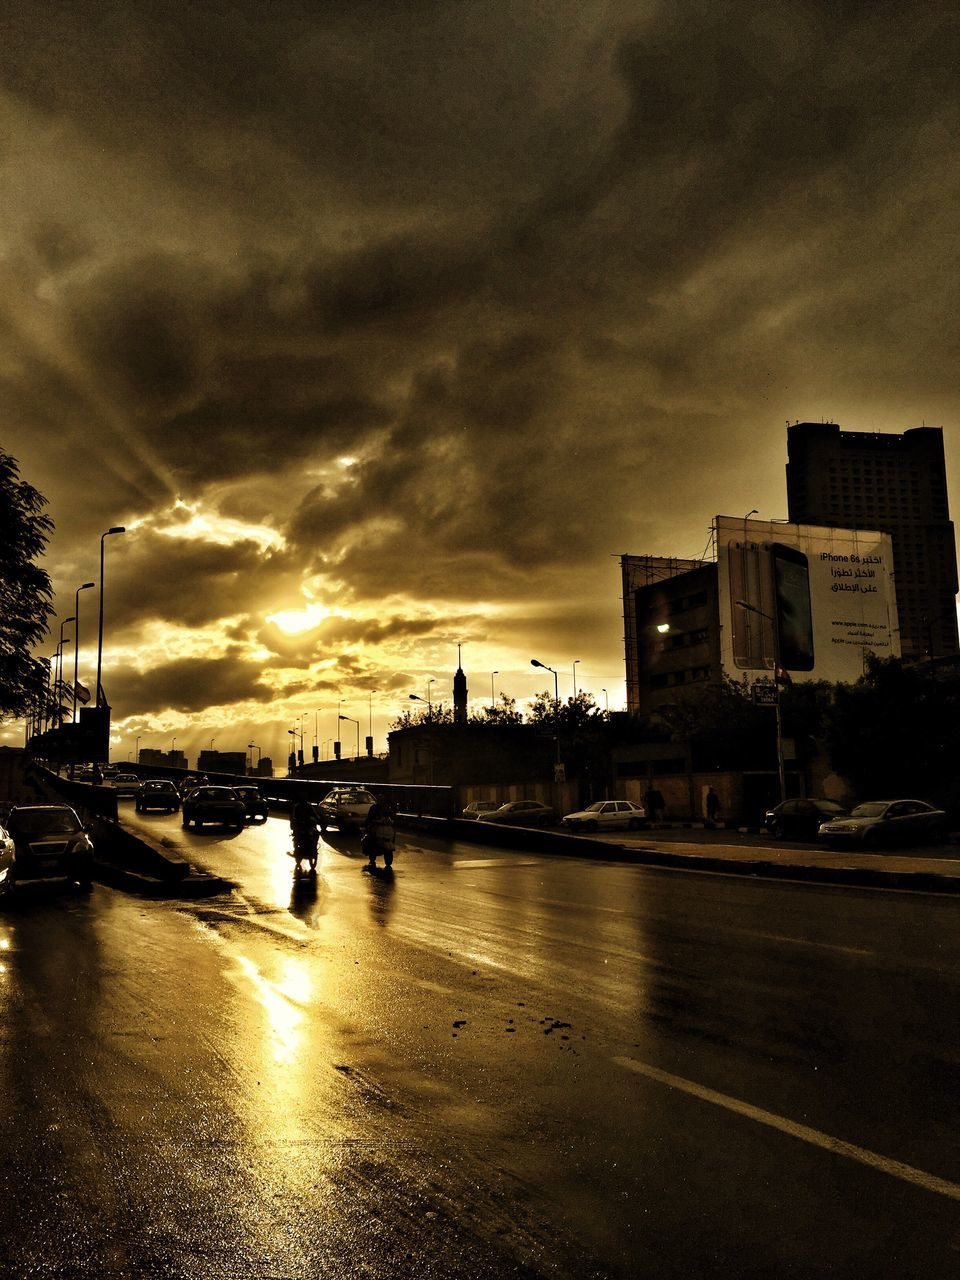 sky, cloud - sky, sunset, architecture, built structure, city, building exterior, storm cloud, city life, outdoors, no people, transportation, water, travel destinations, illuminated, skyscraper, cityscape, nature, day